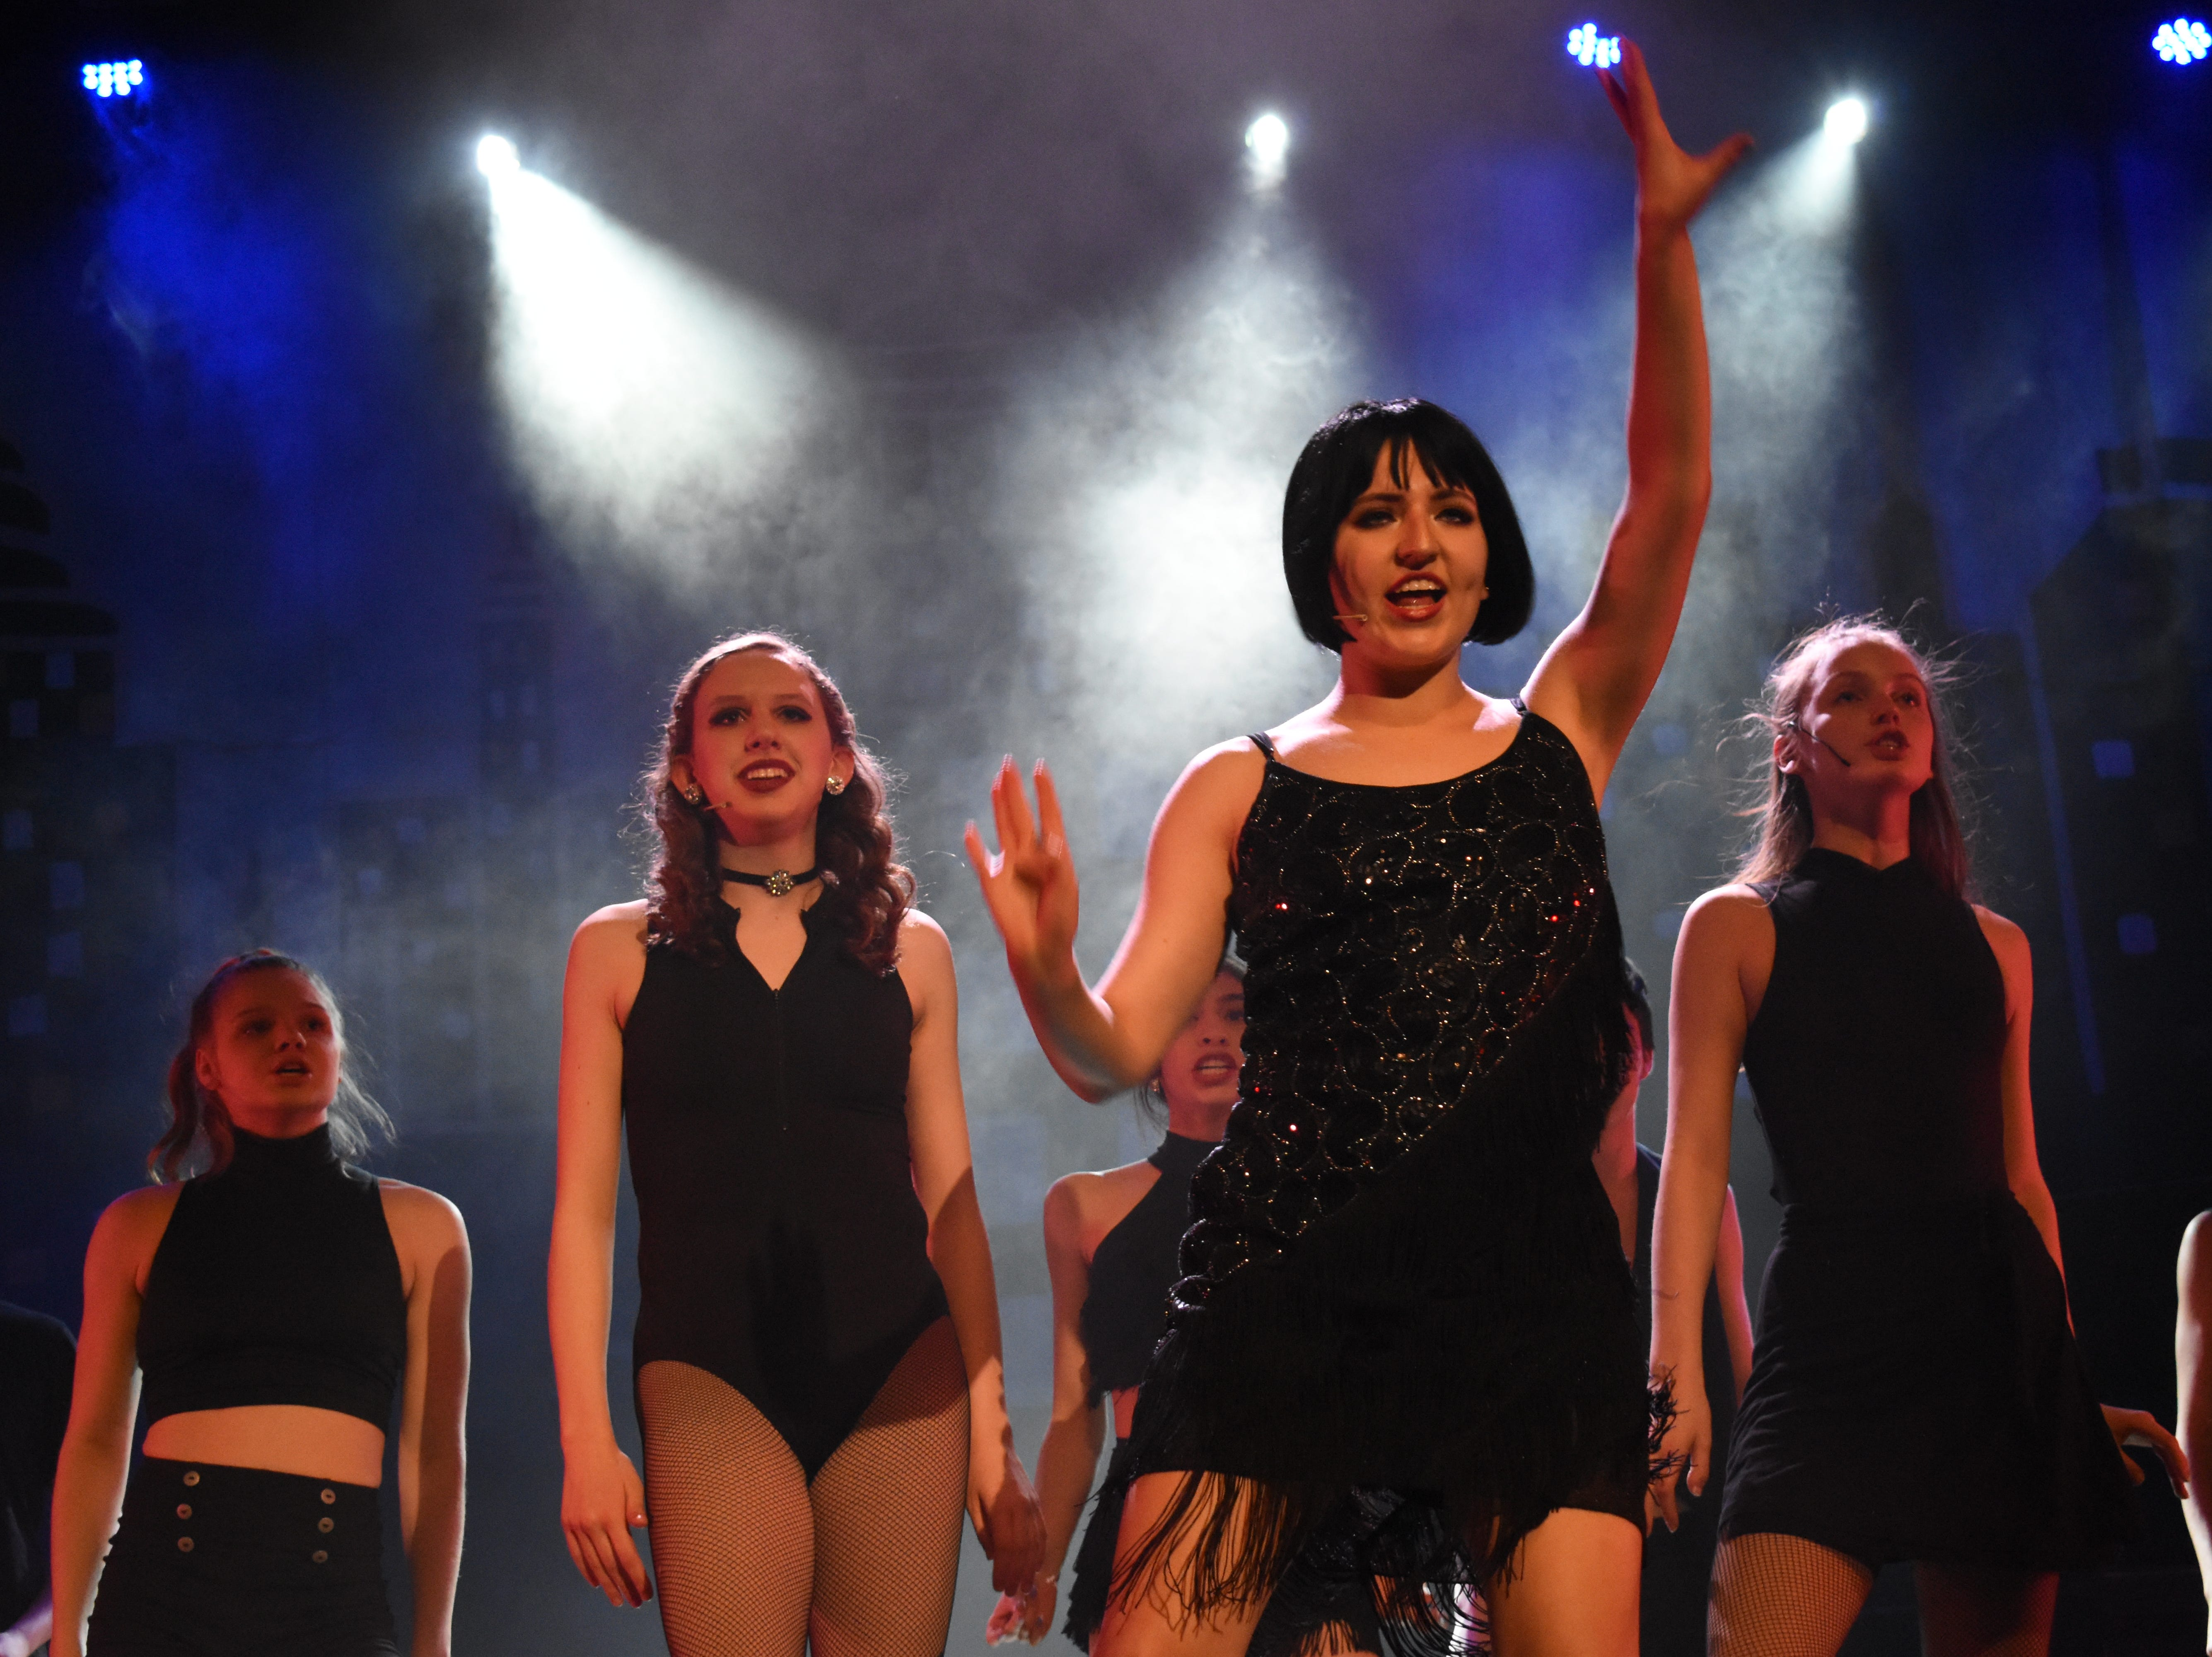 """Pineville High School Theatre's production of """"Chicago (High School Edition)"""" is set to open at 7 p.m. Thursday, Feb. 21, 2019 in the PHS auditorium. The show will be at 7 p.m. Friday and Saturday and at 2 p.m. Sunday. Tickets are $13.50 for adults, $10.50 for seniors and $8.50 for students. The musical, set in Chicago the 1920s, is about a married woman named Roxie Hart who murders a man with which she is having an affair. She is convicted and sentenced to death. She and another convict at the prison, Velma Kelly, vie for fame, fortune and headlines in the newspapers. Alyssa McClain stars as Roxie; Mia Huffman as Velma; Nico Zona as Billy Flynn; Gabrielle Bernard as Matron """"Mama"""" Morton and Kaiden Carbaugh as Amos Hart.Tickets can be purchased at www.pinevill"""